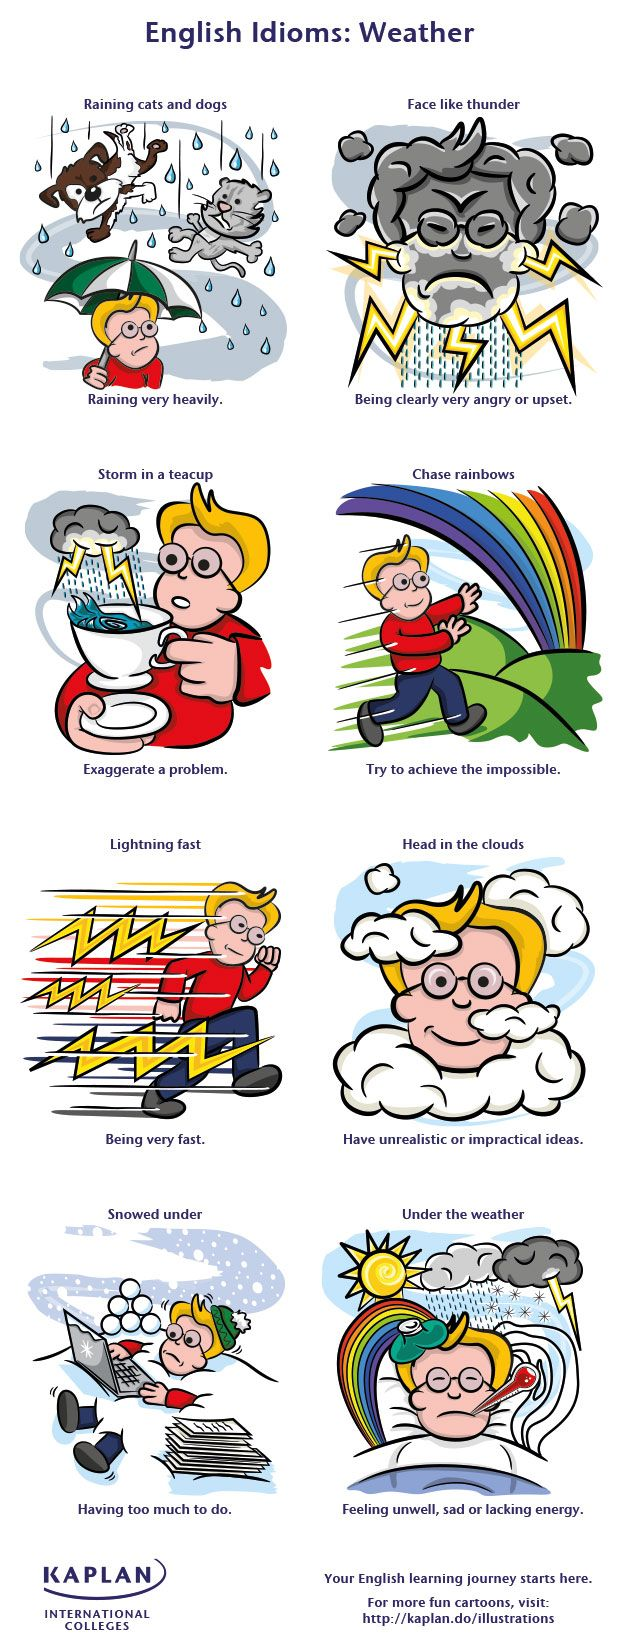 English Idioms: The Weather - Kaplan International Colleges Blog